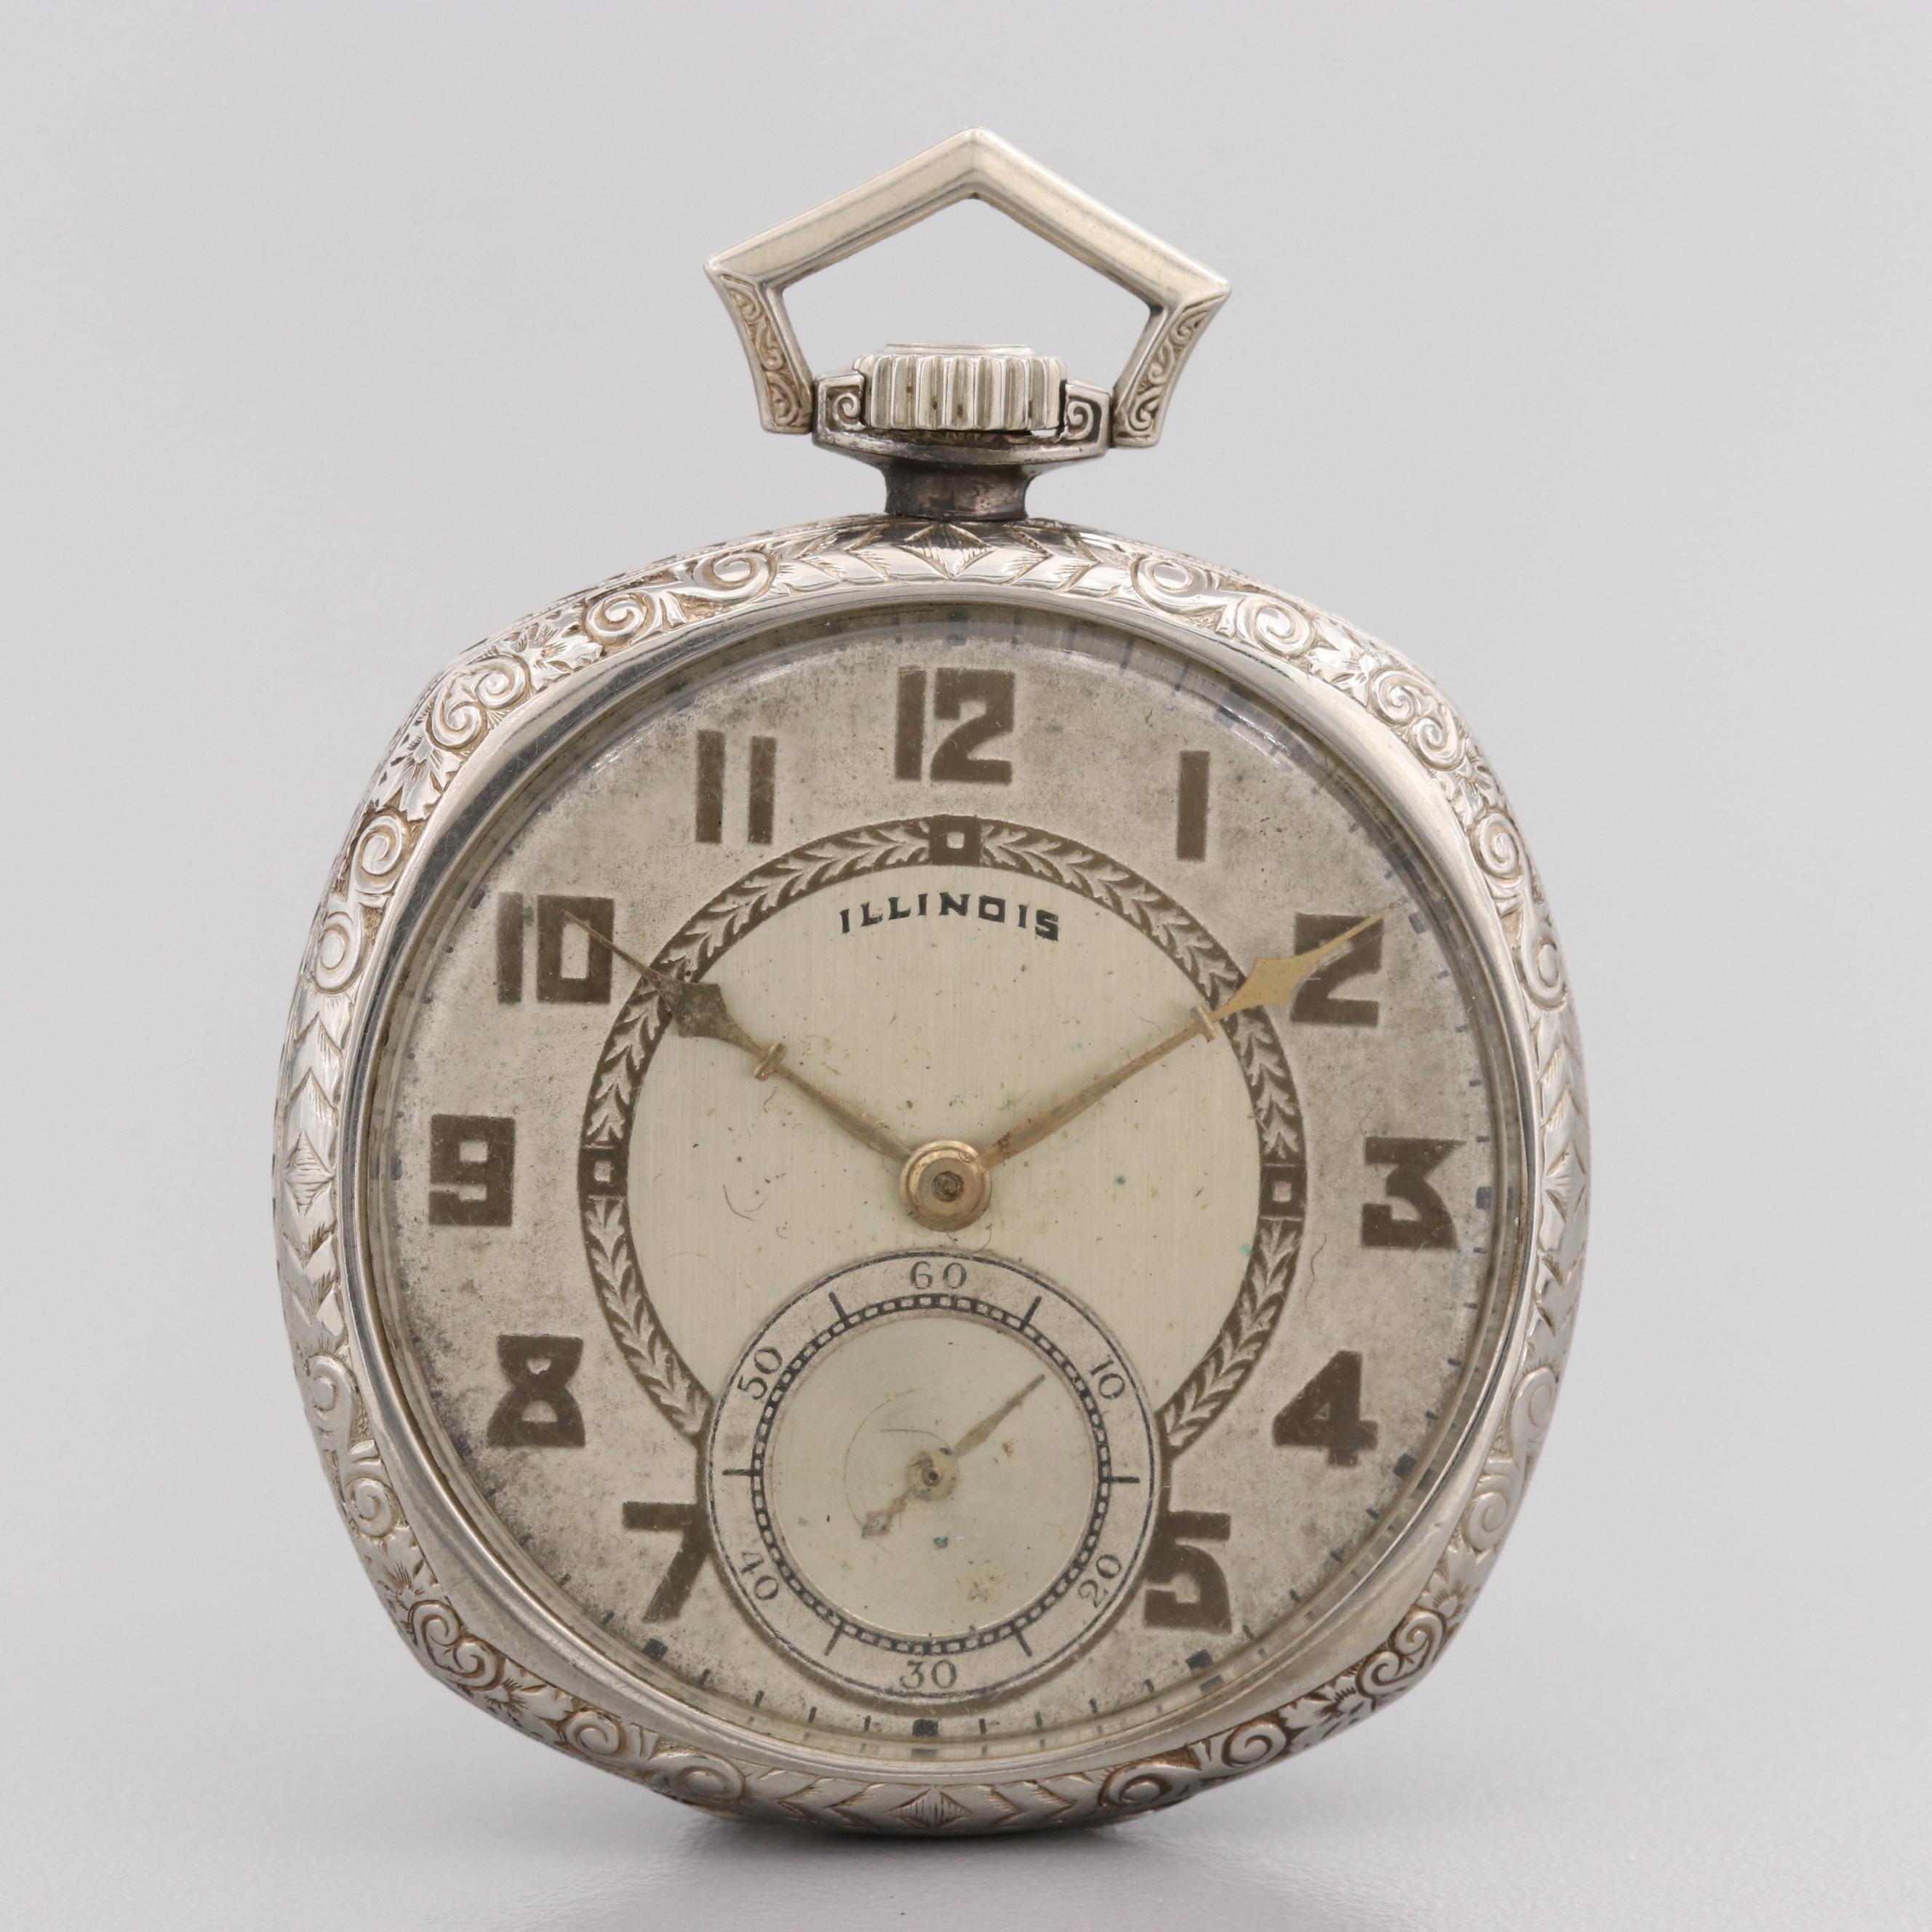 Illinois 14K White Gold Pocket Watch, 1926